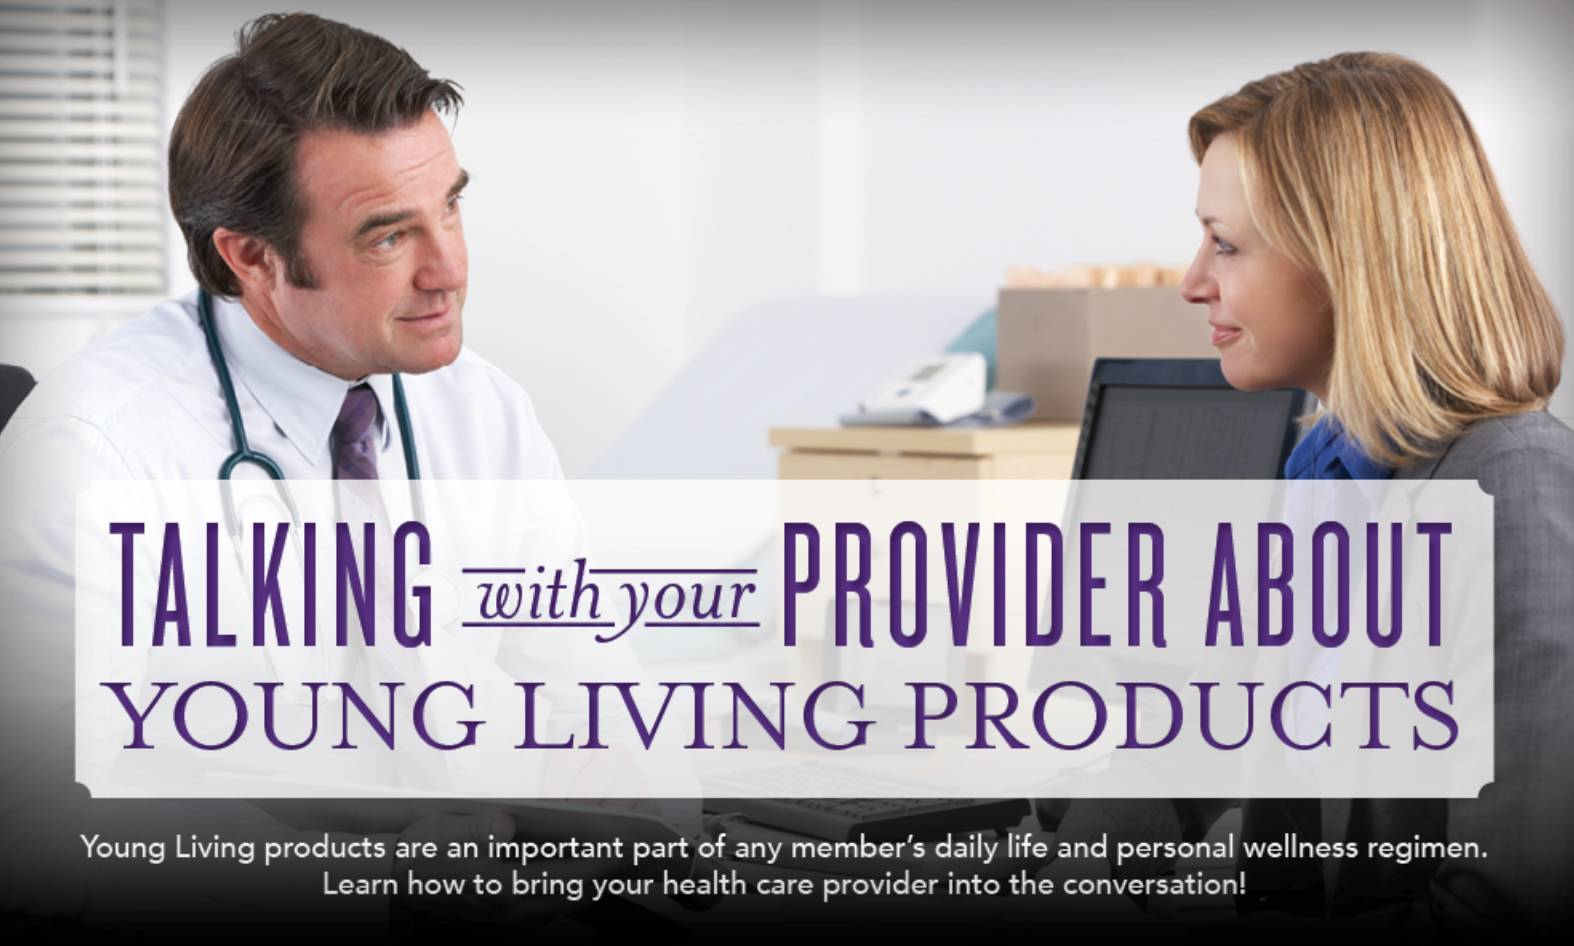 How to Talk to Your Health Care Provider About Young Living Products